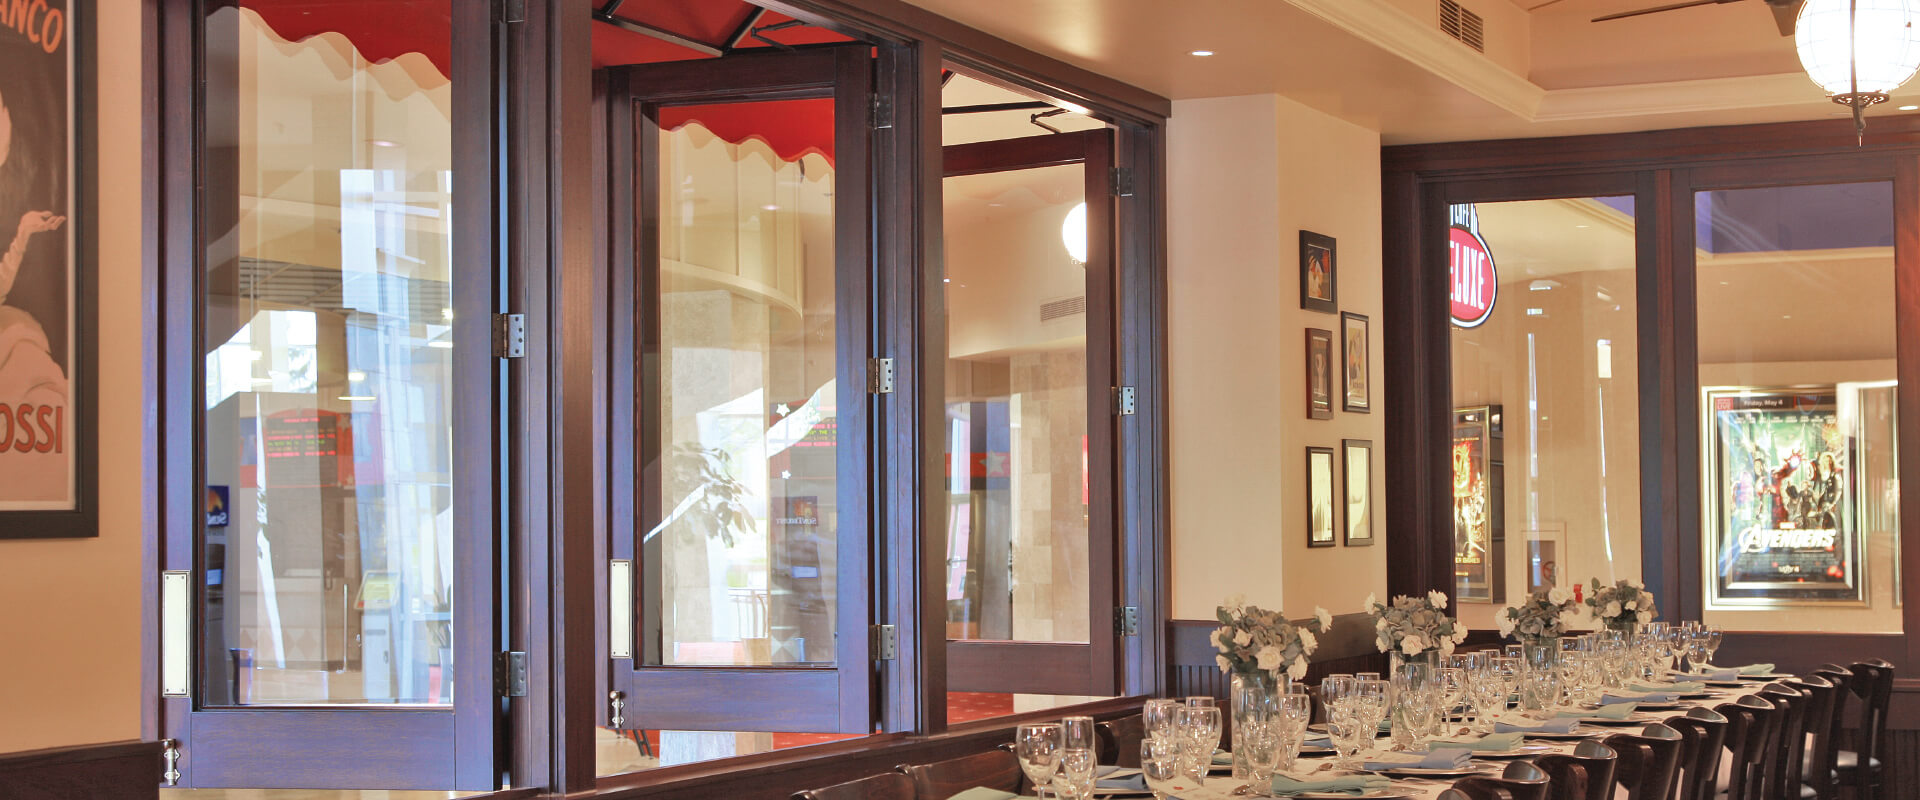 French Casement Windows Photos Houzz - Heritage series push out casements modified for restaurant use